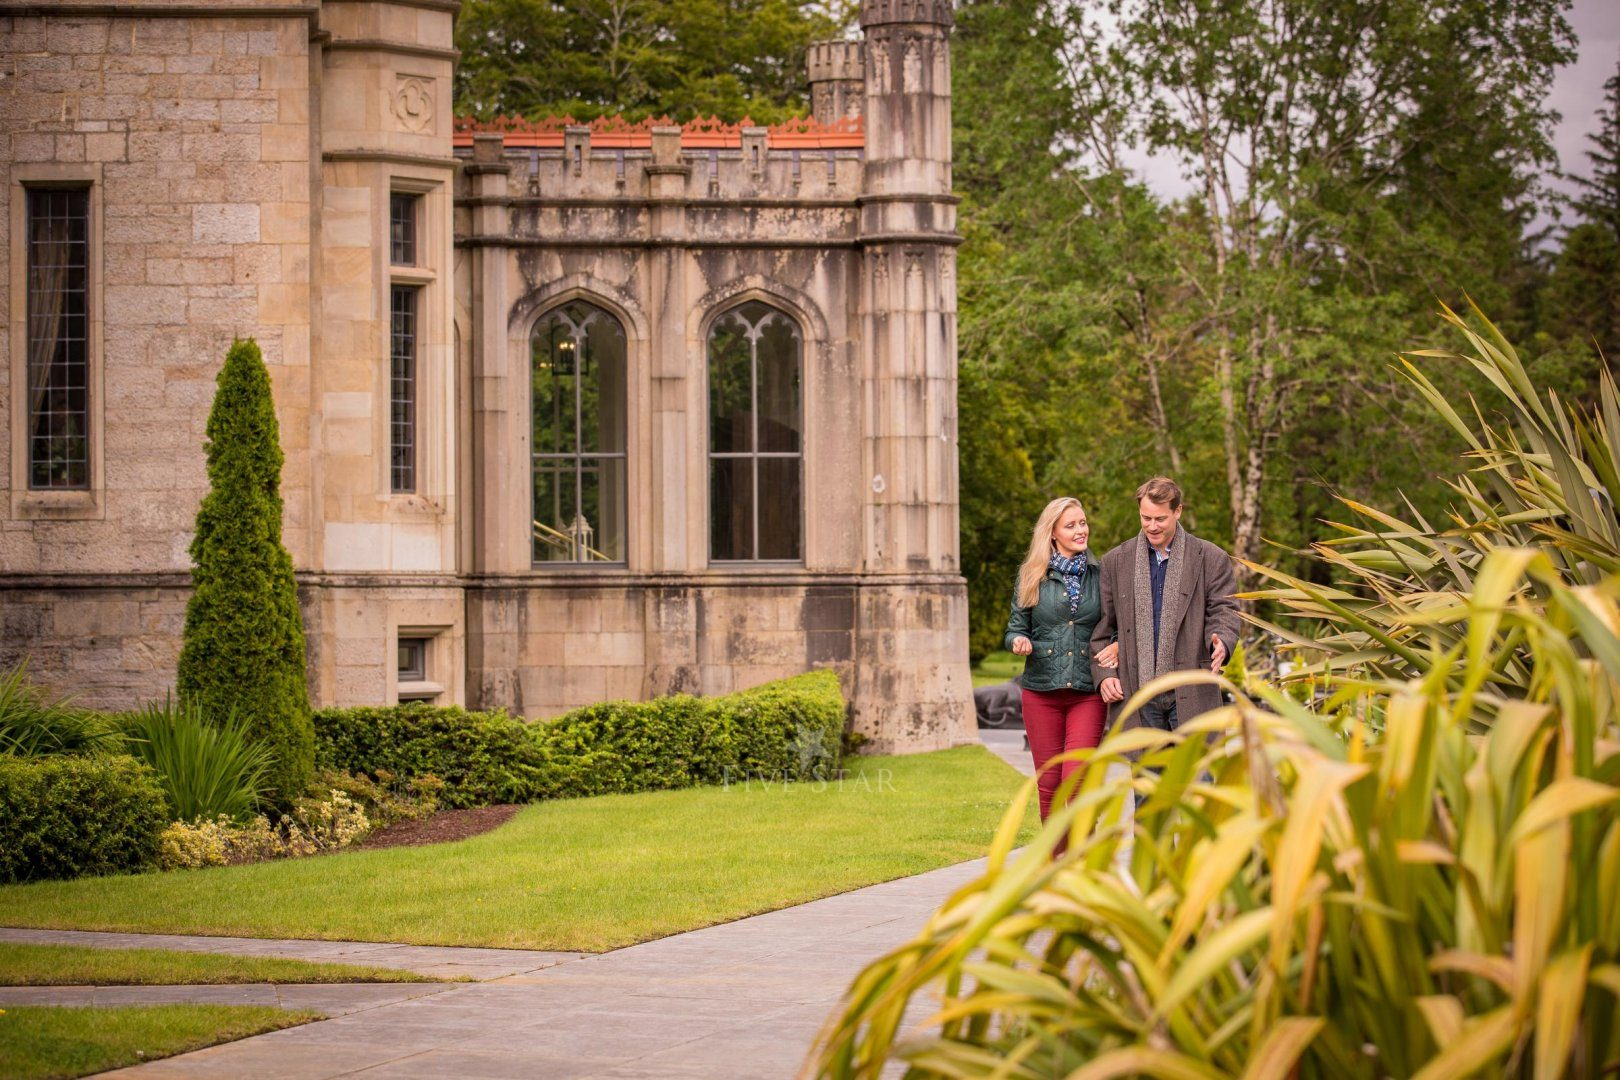 Lough Eske Castle photo 29